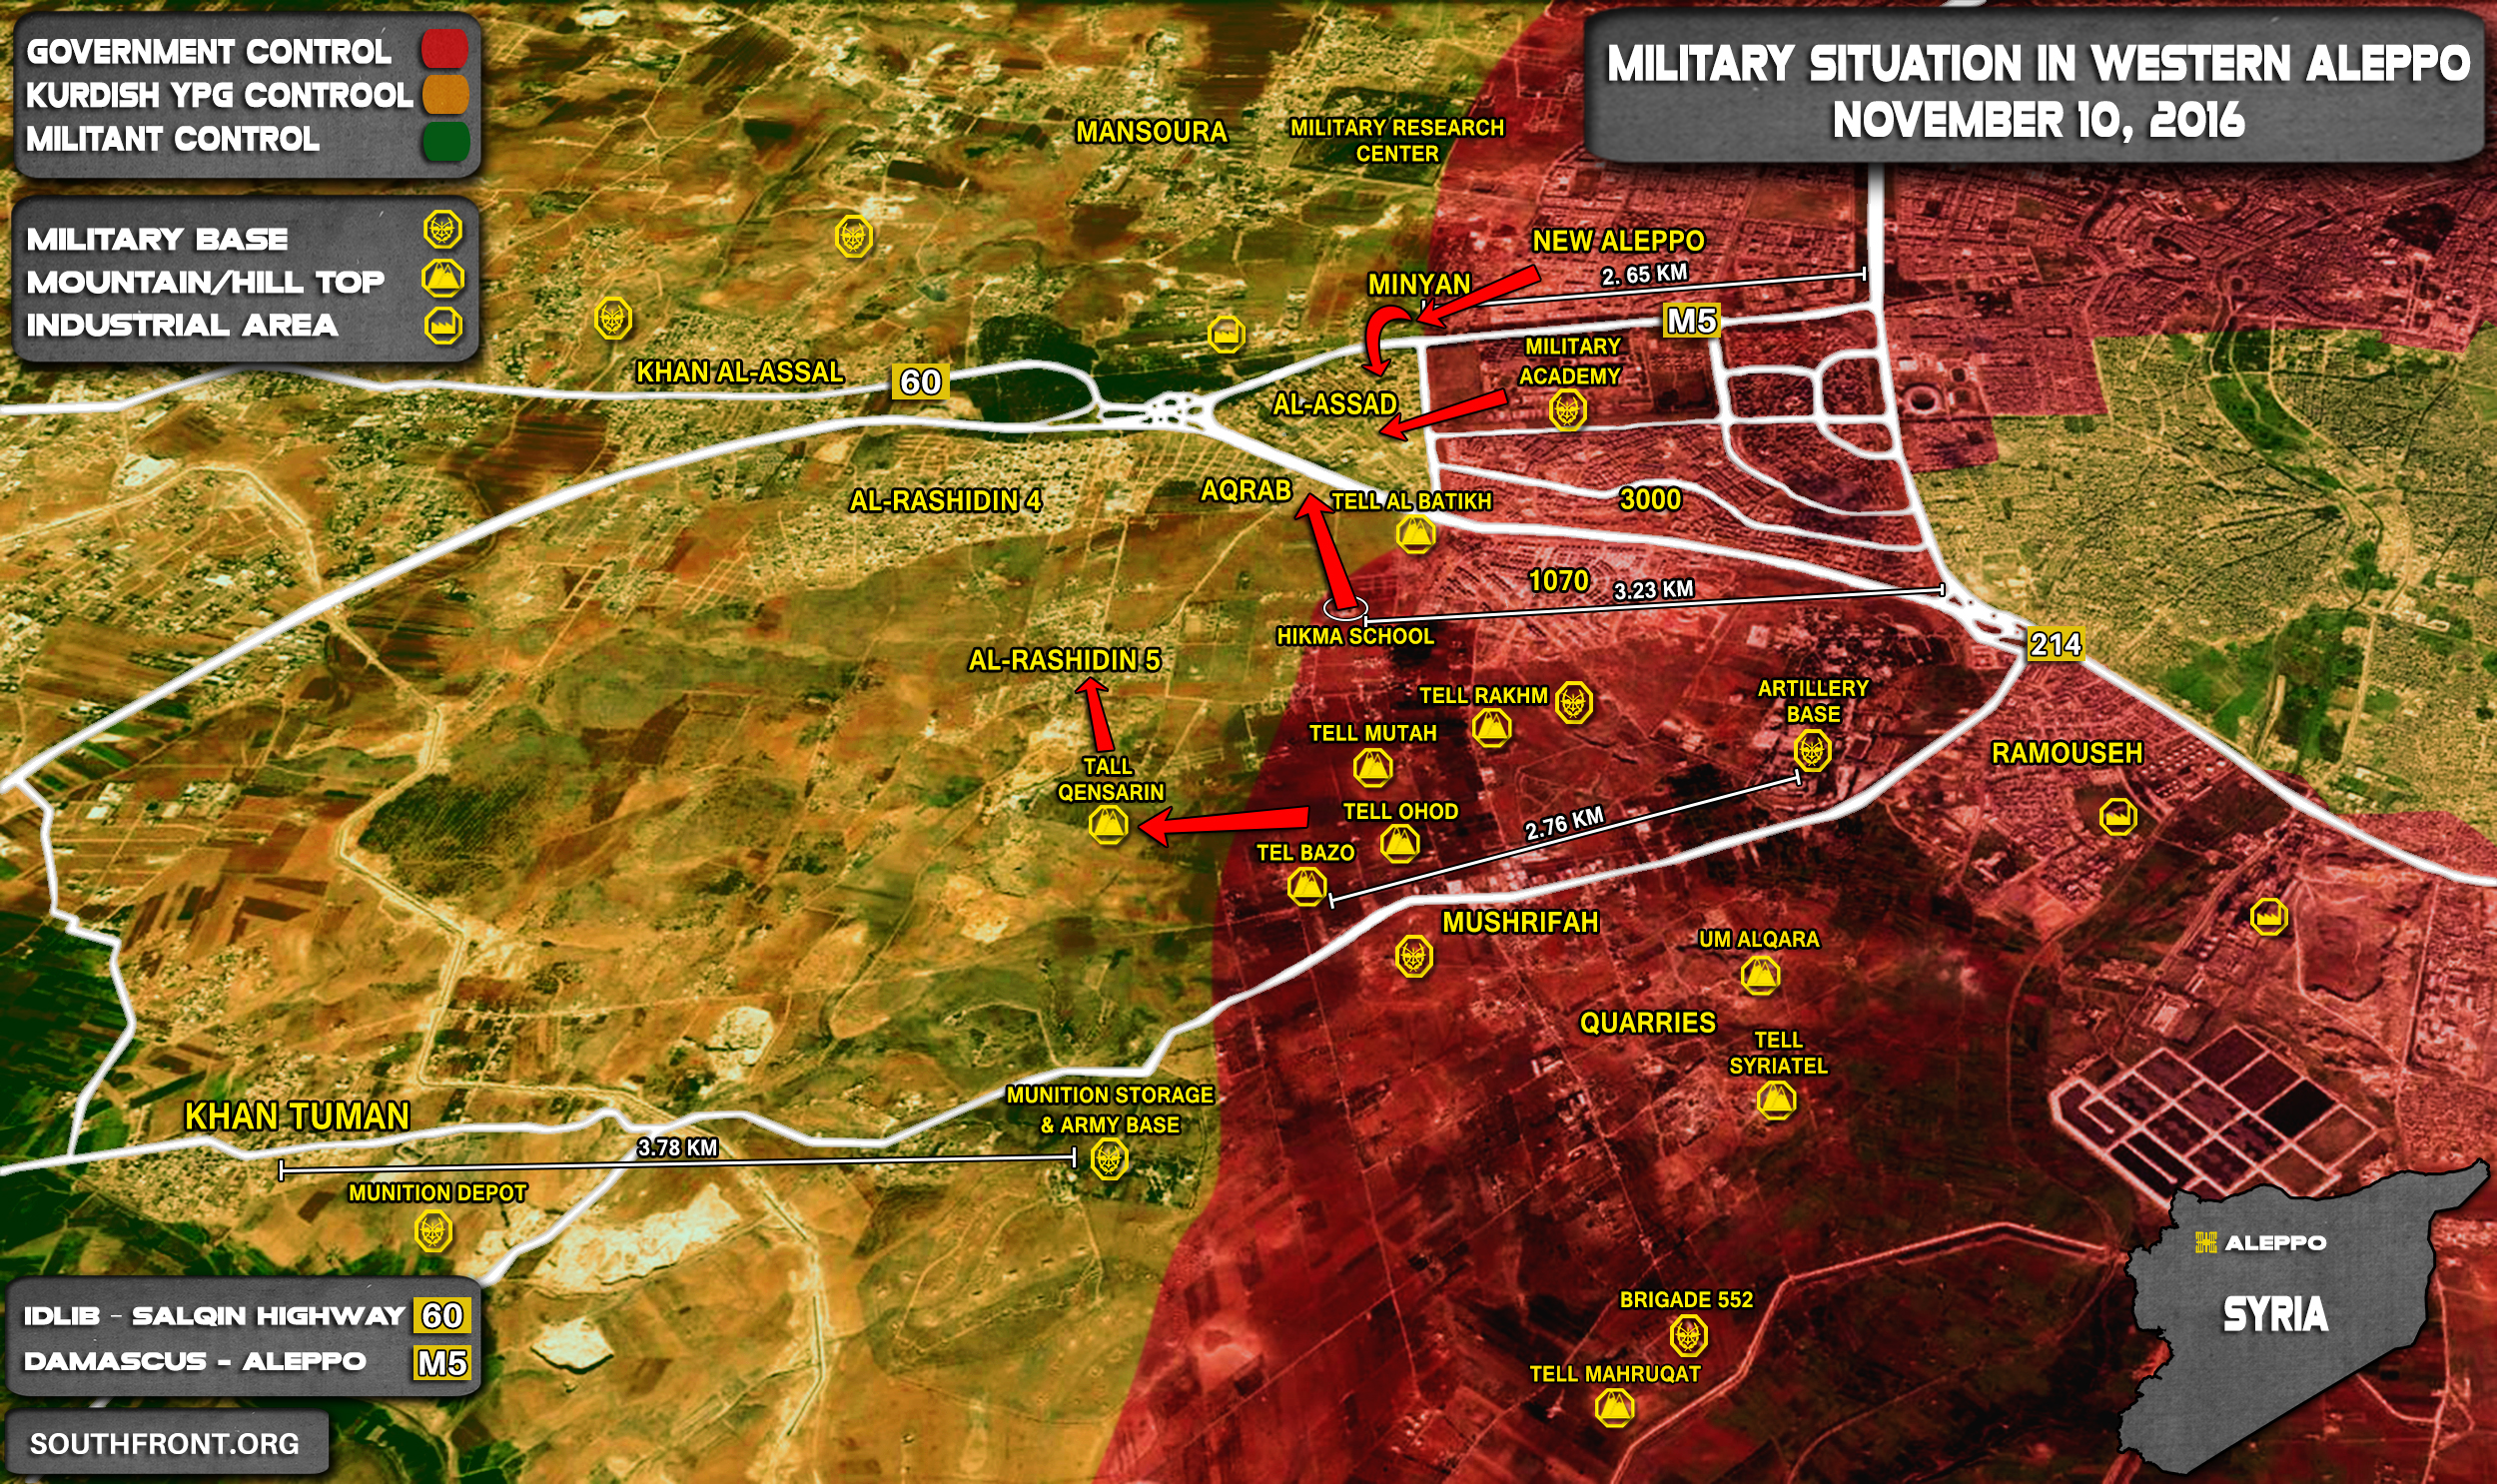 Overview of Miltary Situation in Aleppo City on November 10, 2016